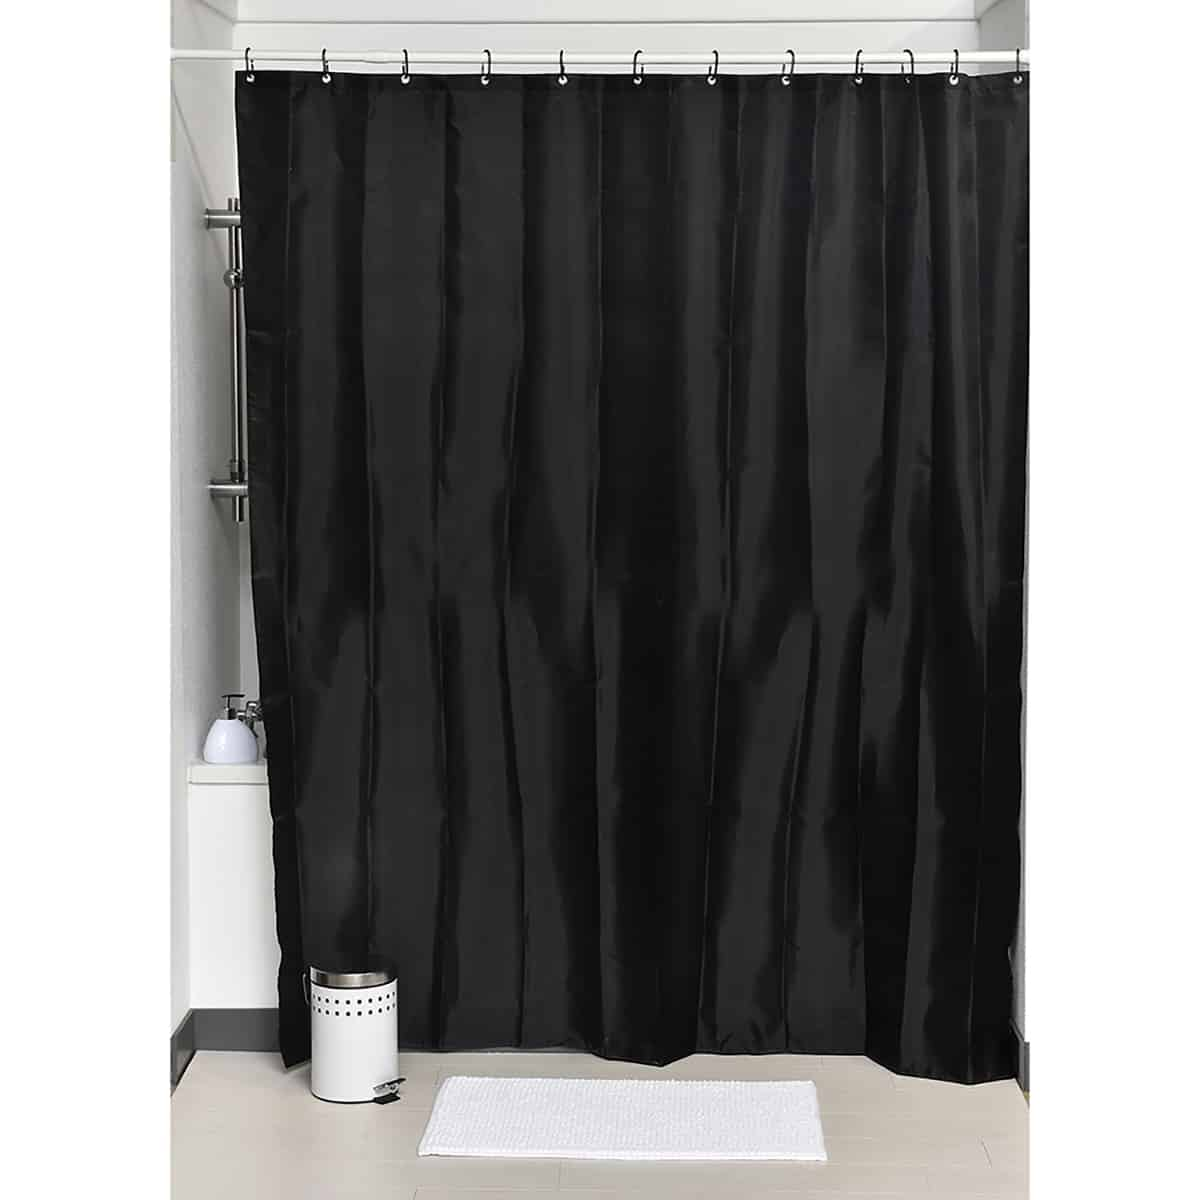 Evideco Design S Fabric Polyester Shower Curtain With 12 Matching Rings Black